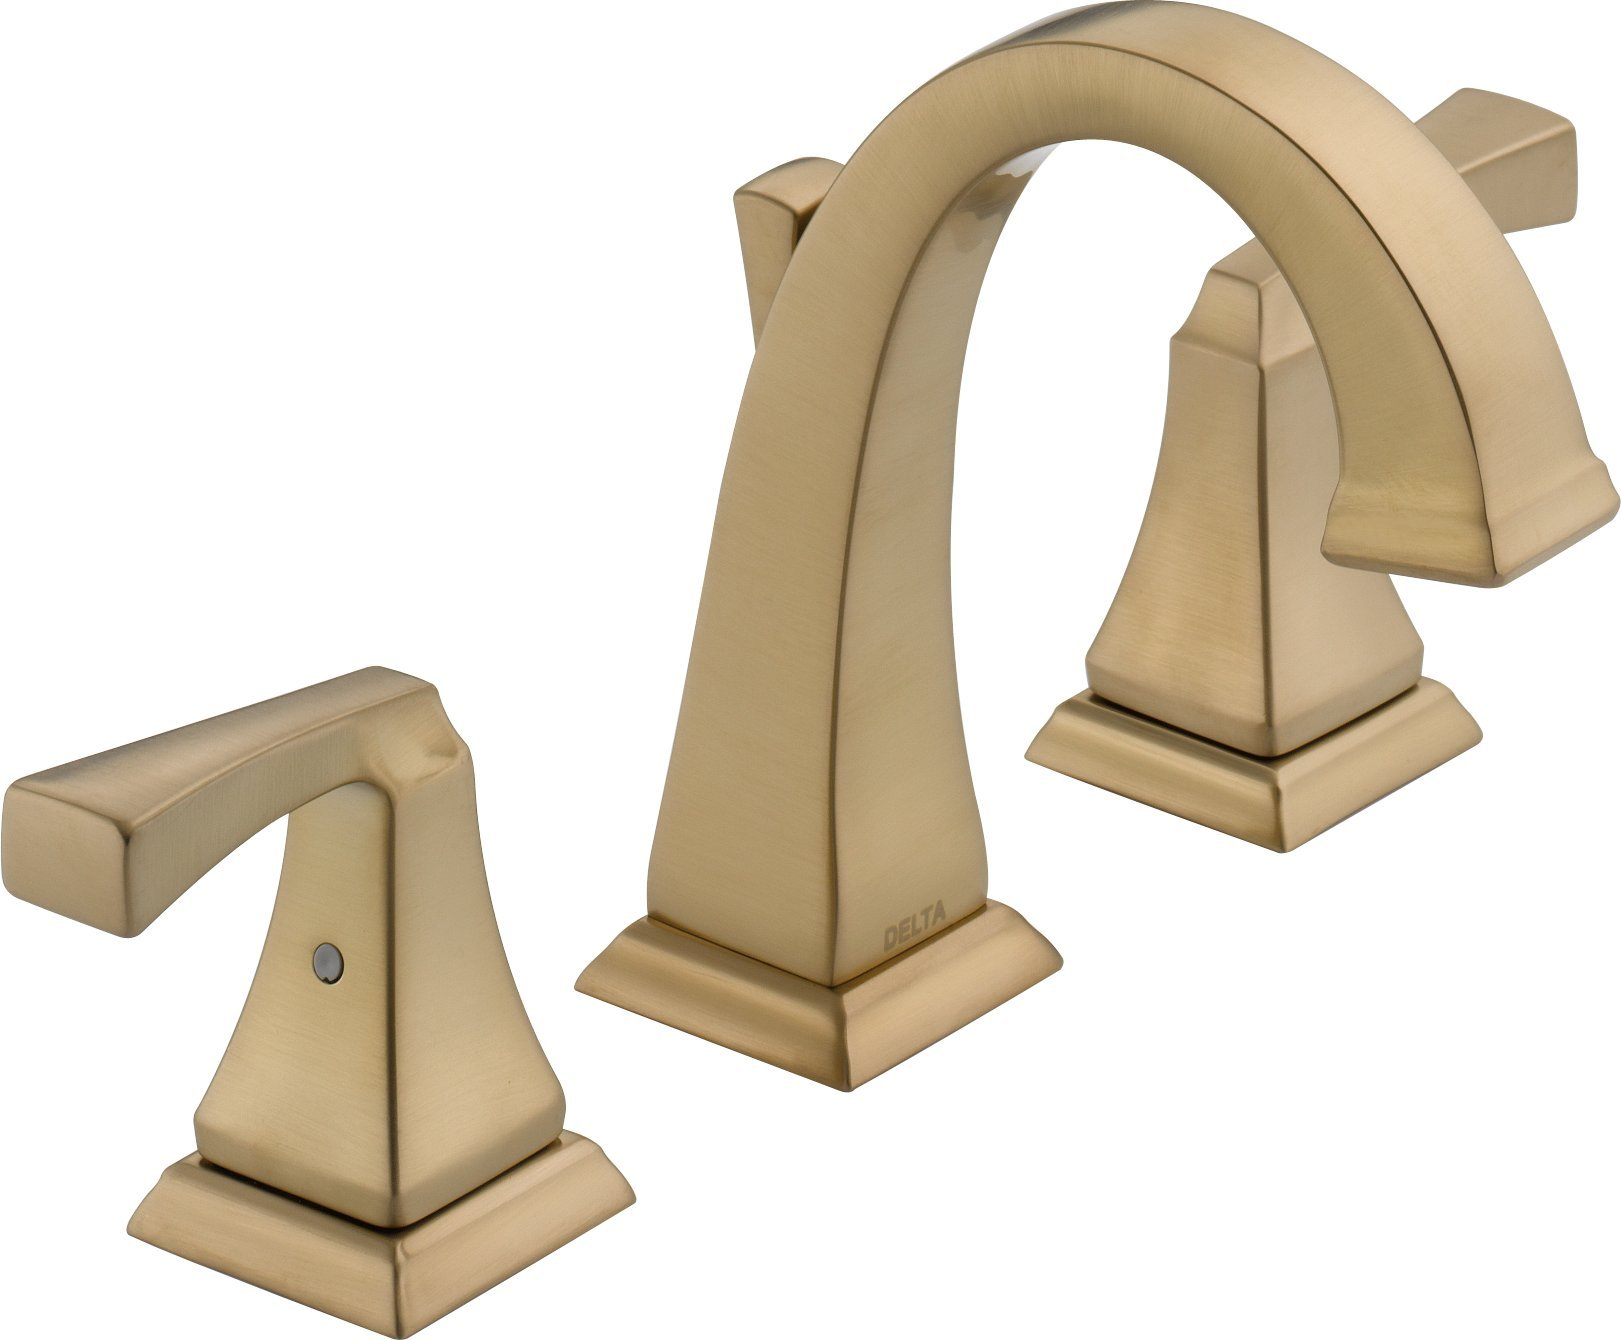 Delta Faucet 3551LF-CZ Dryden Two Handle Widespread Bathroom Faucet, Champagne Bronze by DELTA FAUCET